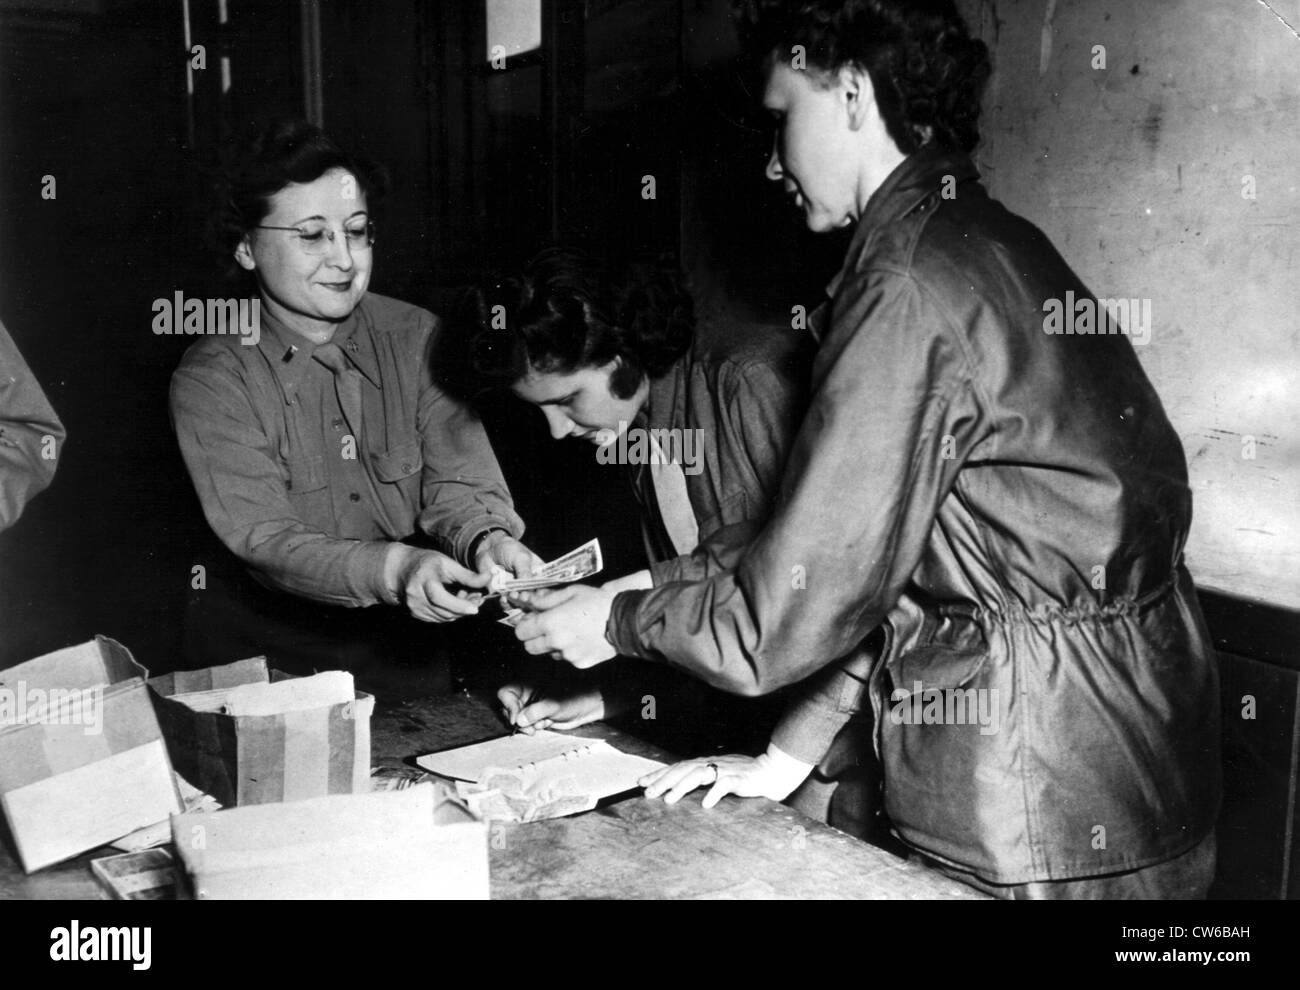 U.S. WAC officer issues French money (England), 1944 - Stock Image